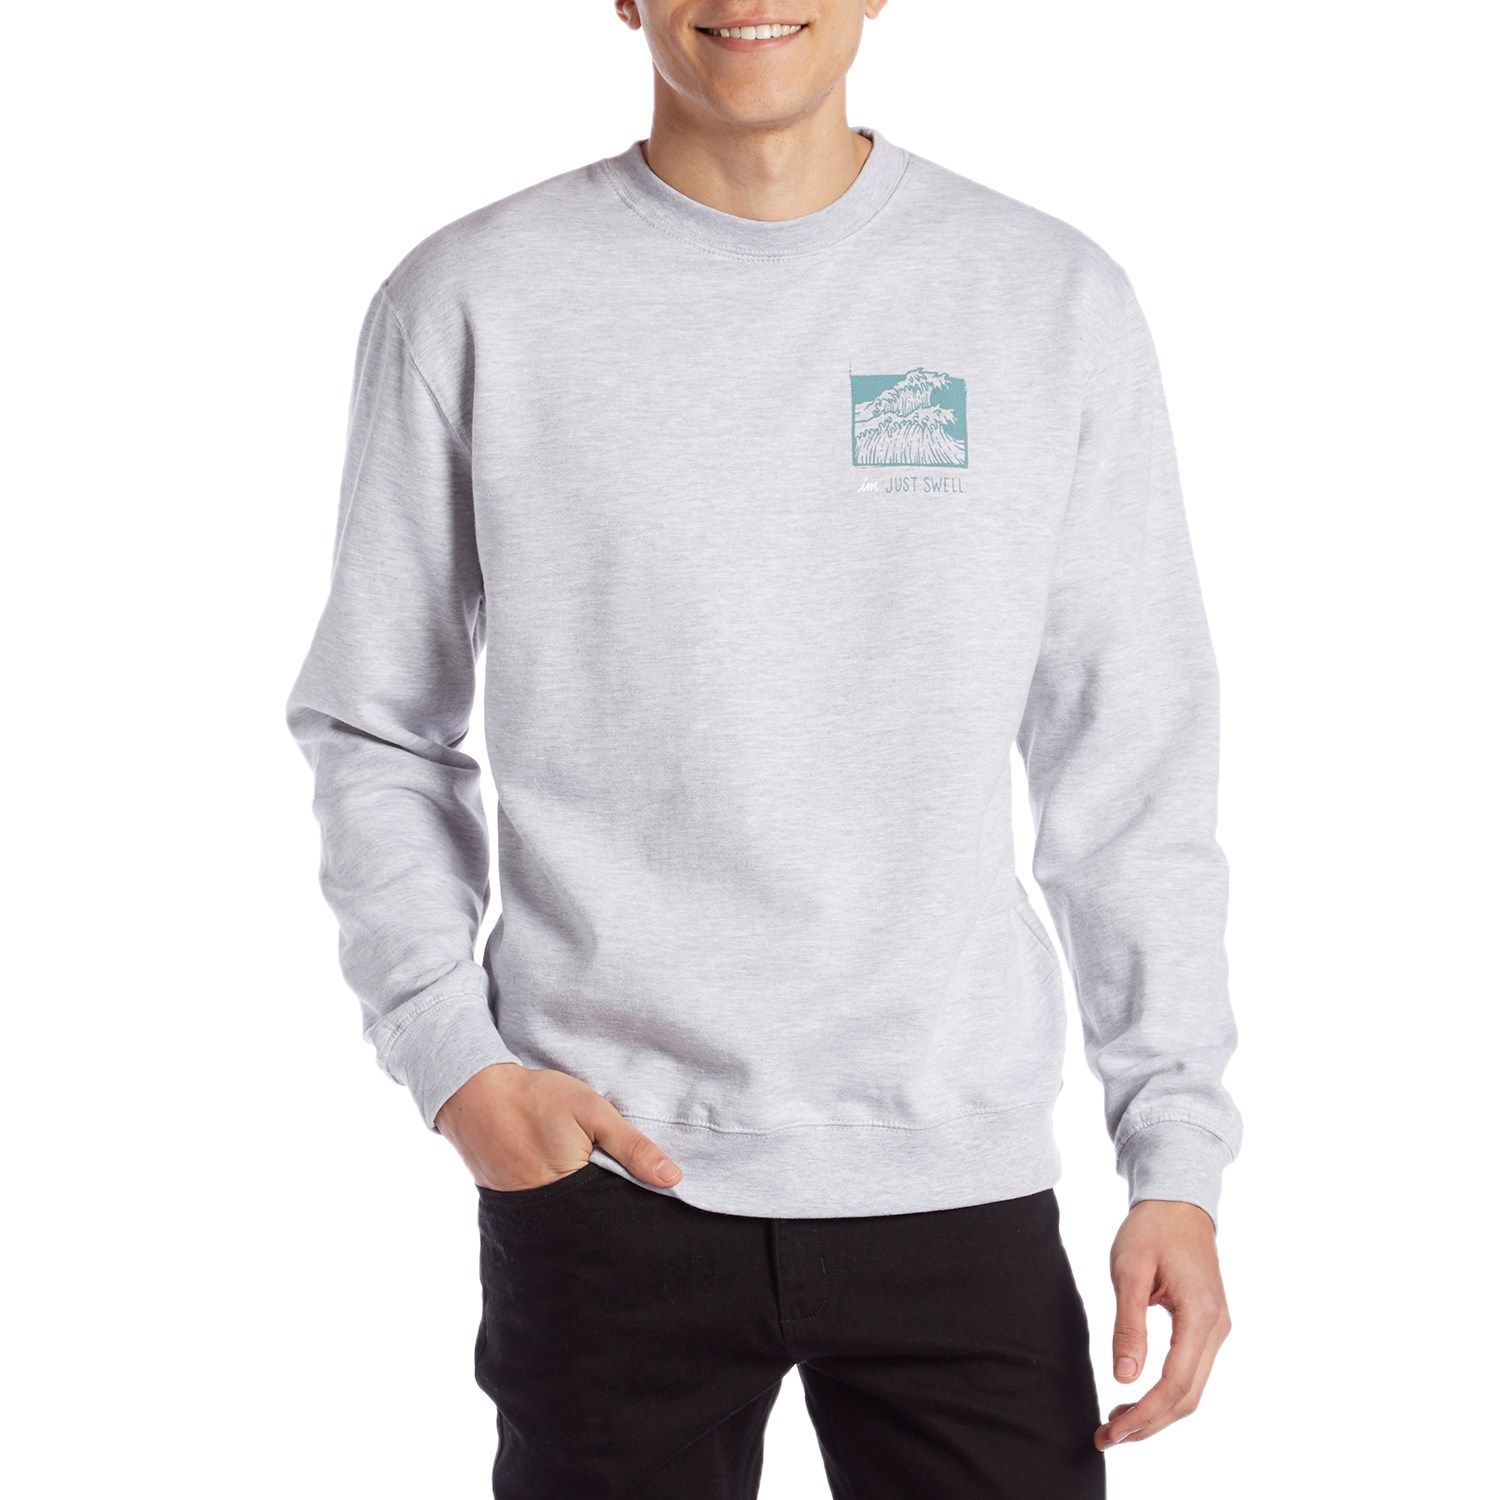 Imperial Motion Just Swell Crew Neck Sweatshirt $49.95 $31.99 LimitedTime